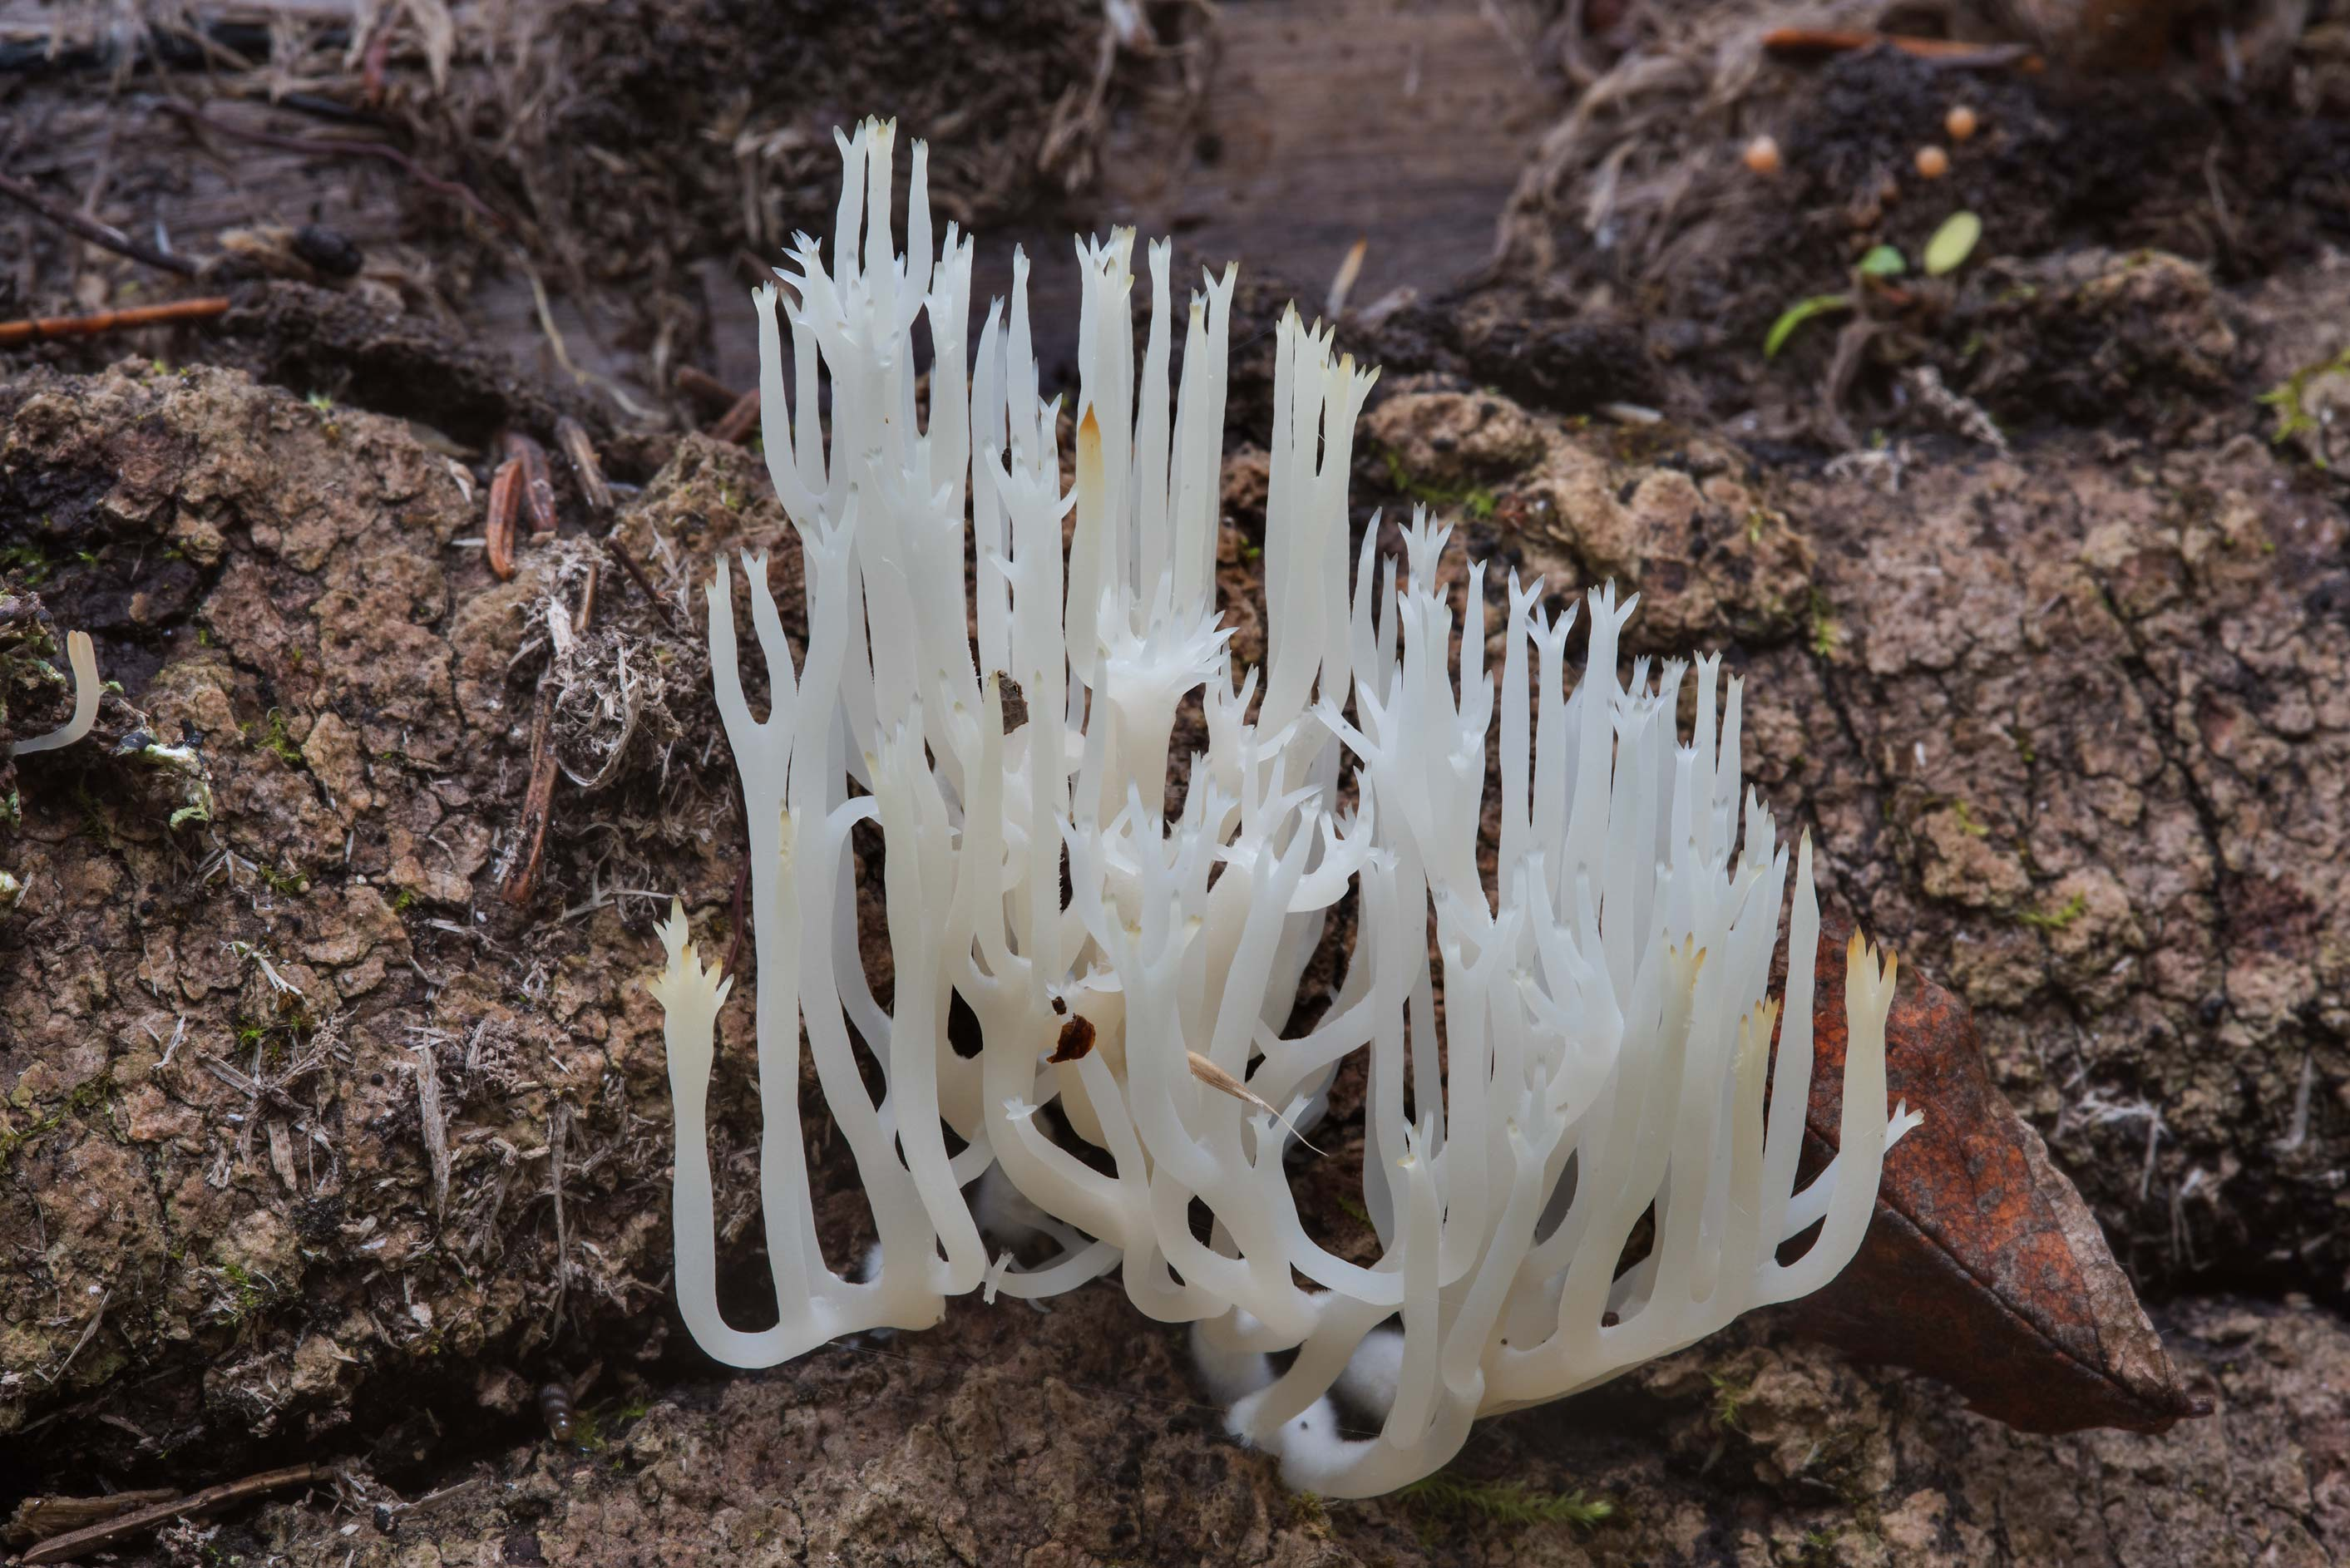 White wood coral mushrooms (Lentaria epichnoa) in...miles south from St.Petersburg. Russia